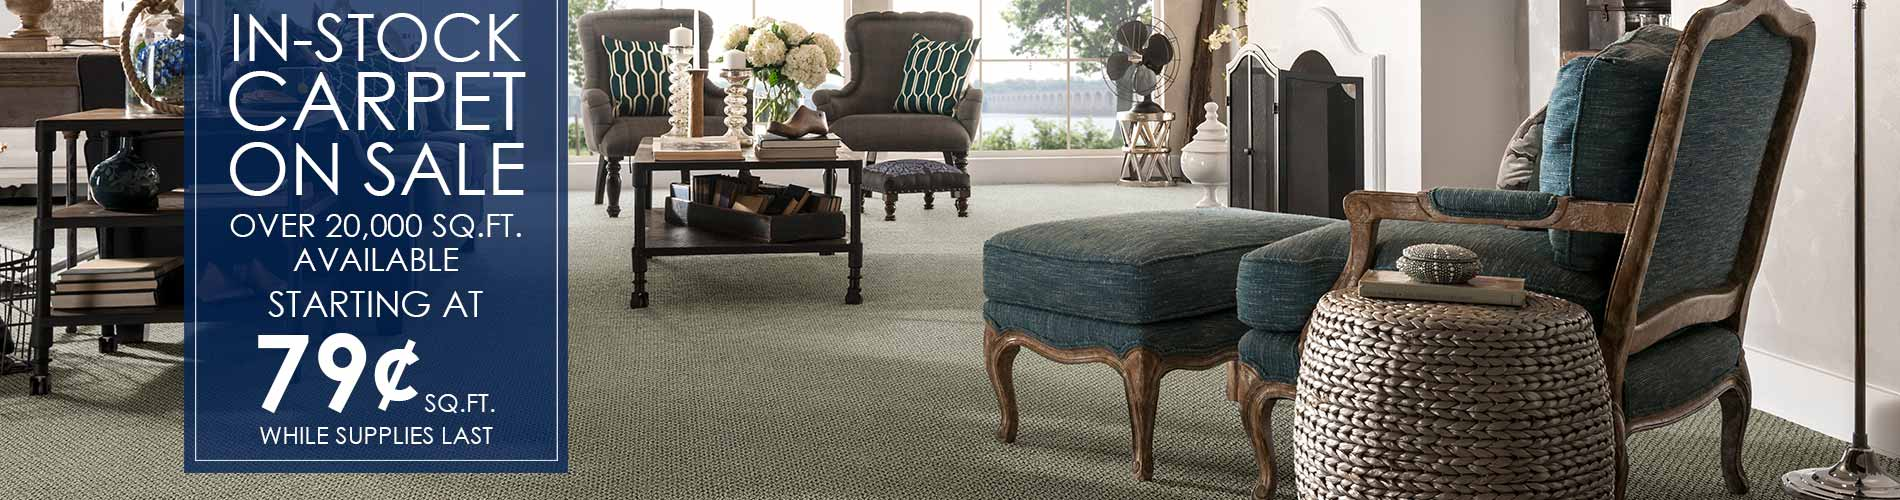 in-stock carpet on sale starting at 79¢ sq.ft. while supplies last!  Over 20,000 sq.ft. available!